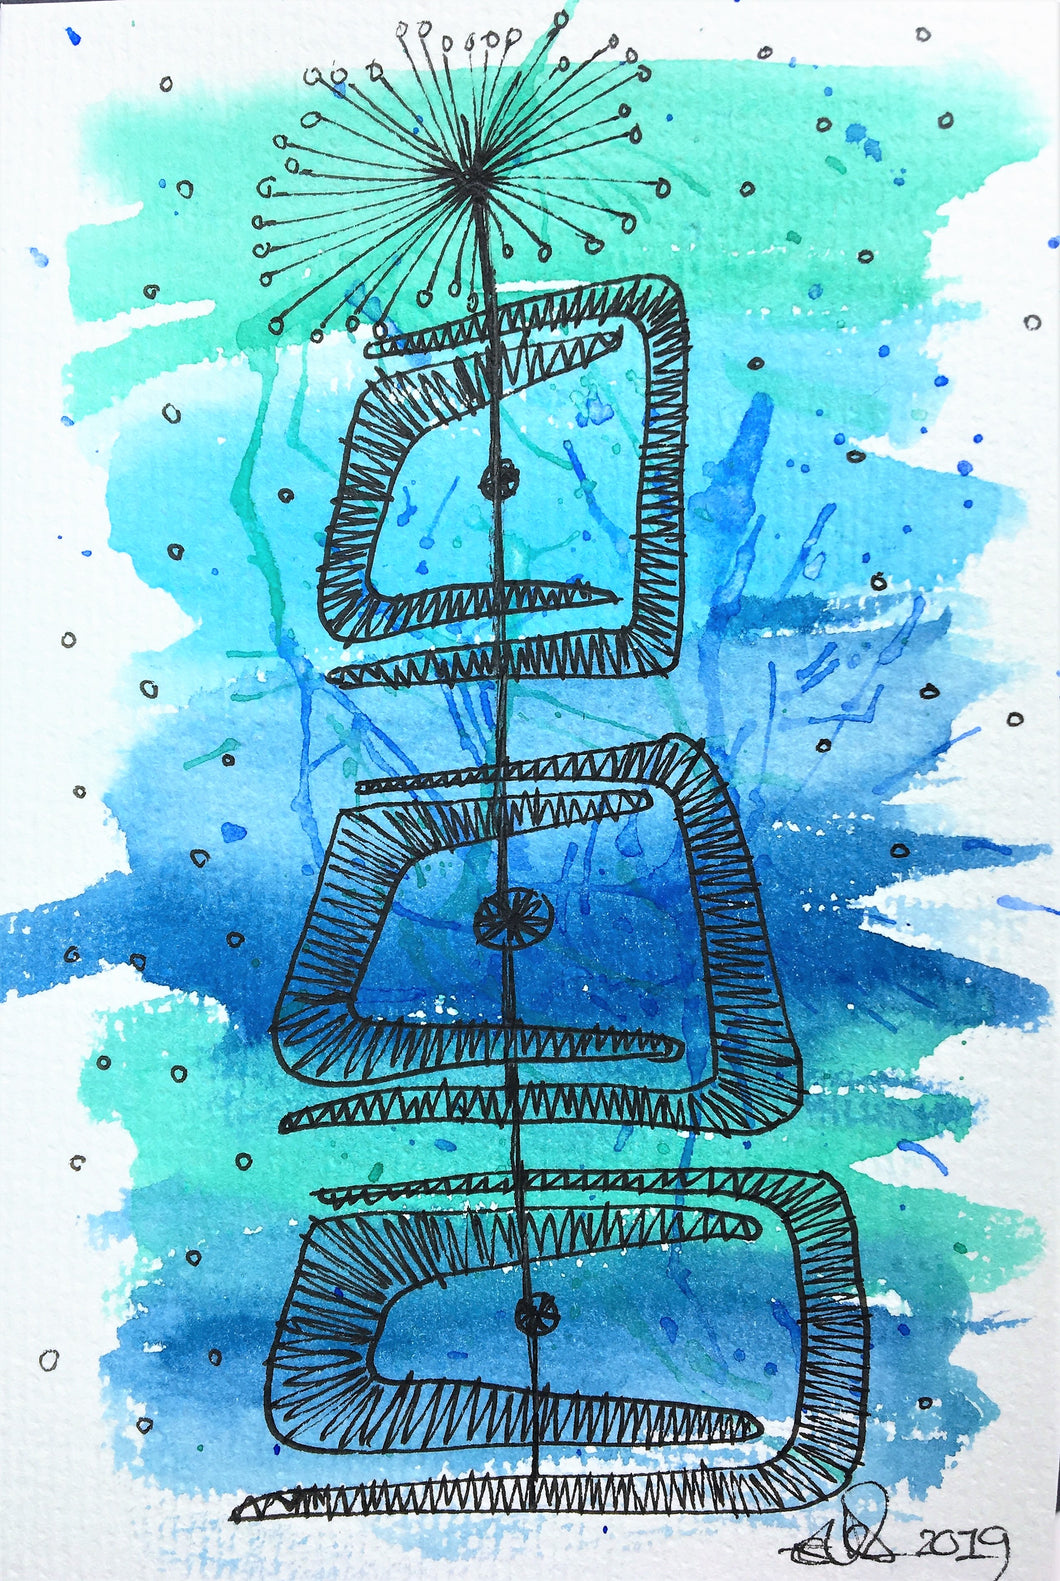 Handpainted Watercolour Greeting Card - Abstract Blue/Green Retro Design - eDgE dEsiGn London